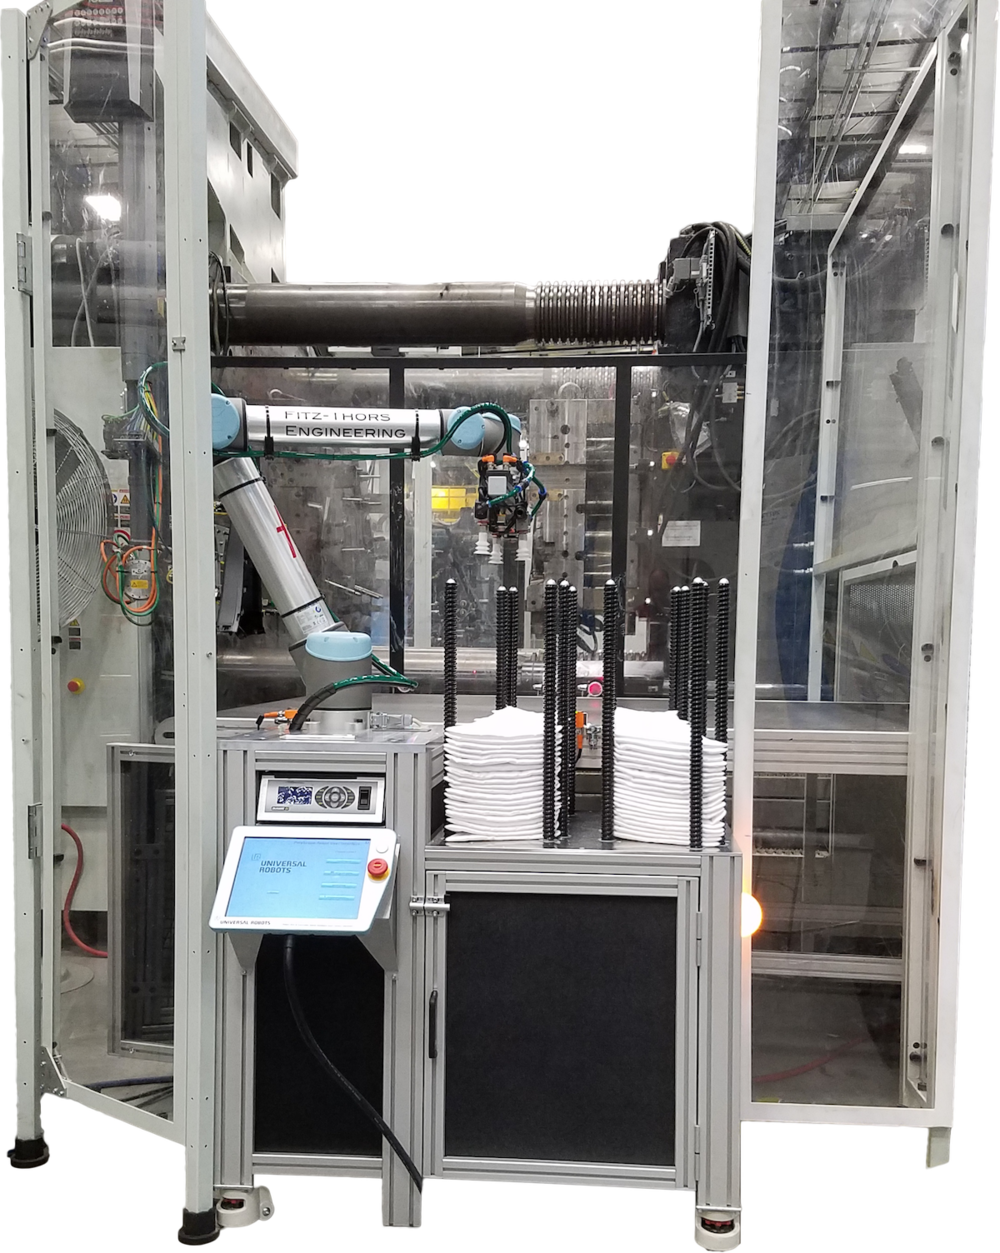 Collaborative Universal Robot, Pick and place, Ultrasonic welding, Automotive part, Fitz-Thors Engineering, Birmingham, AL